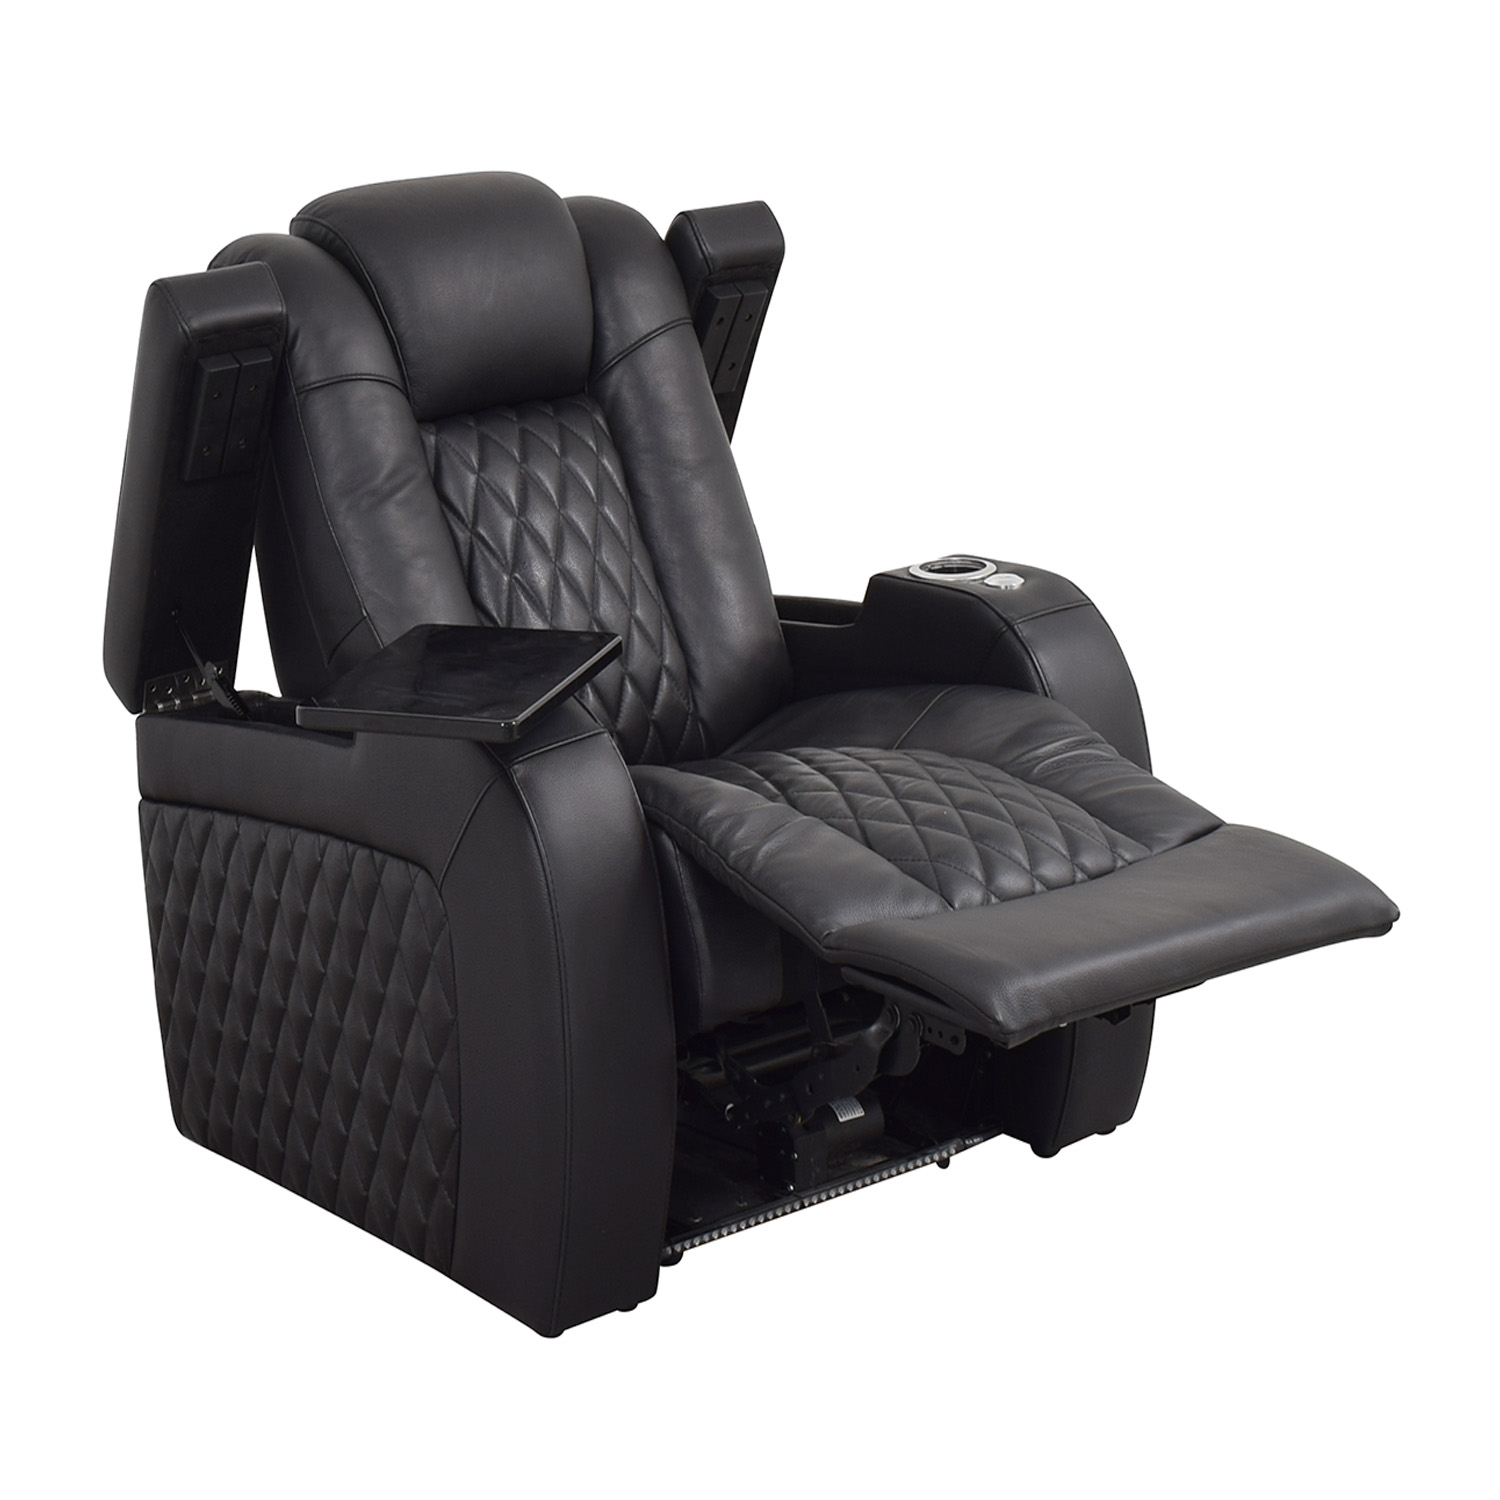 Seatcraft Diamante Home Theater Seating Leather Power Recliner Seatcraft